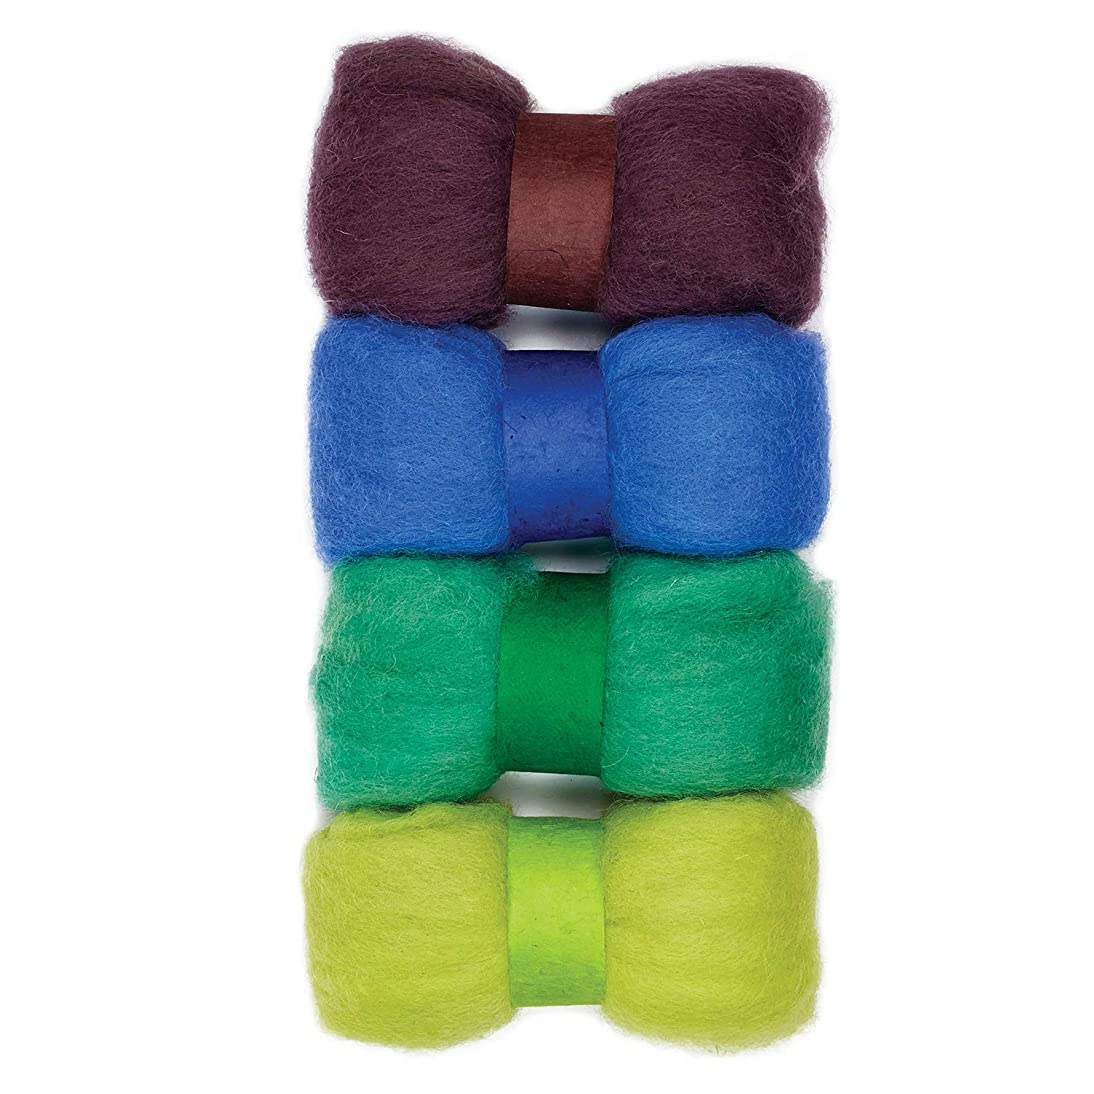 Dimensions 72-75789 Wool Roving Set for Arts and Crafts, 4pc, 2 Ounces, Brown, Blue, Green, and Yellow